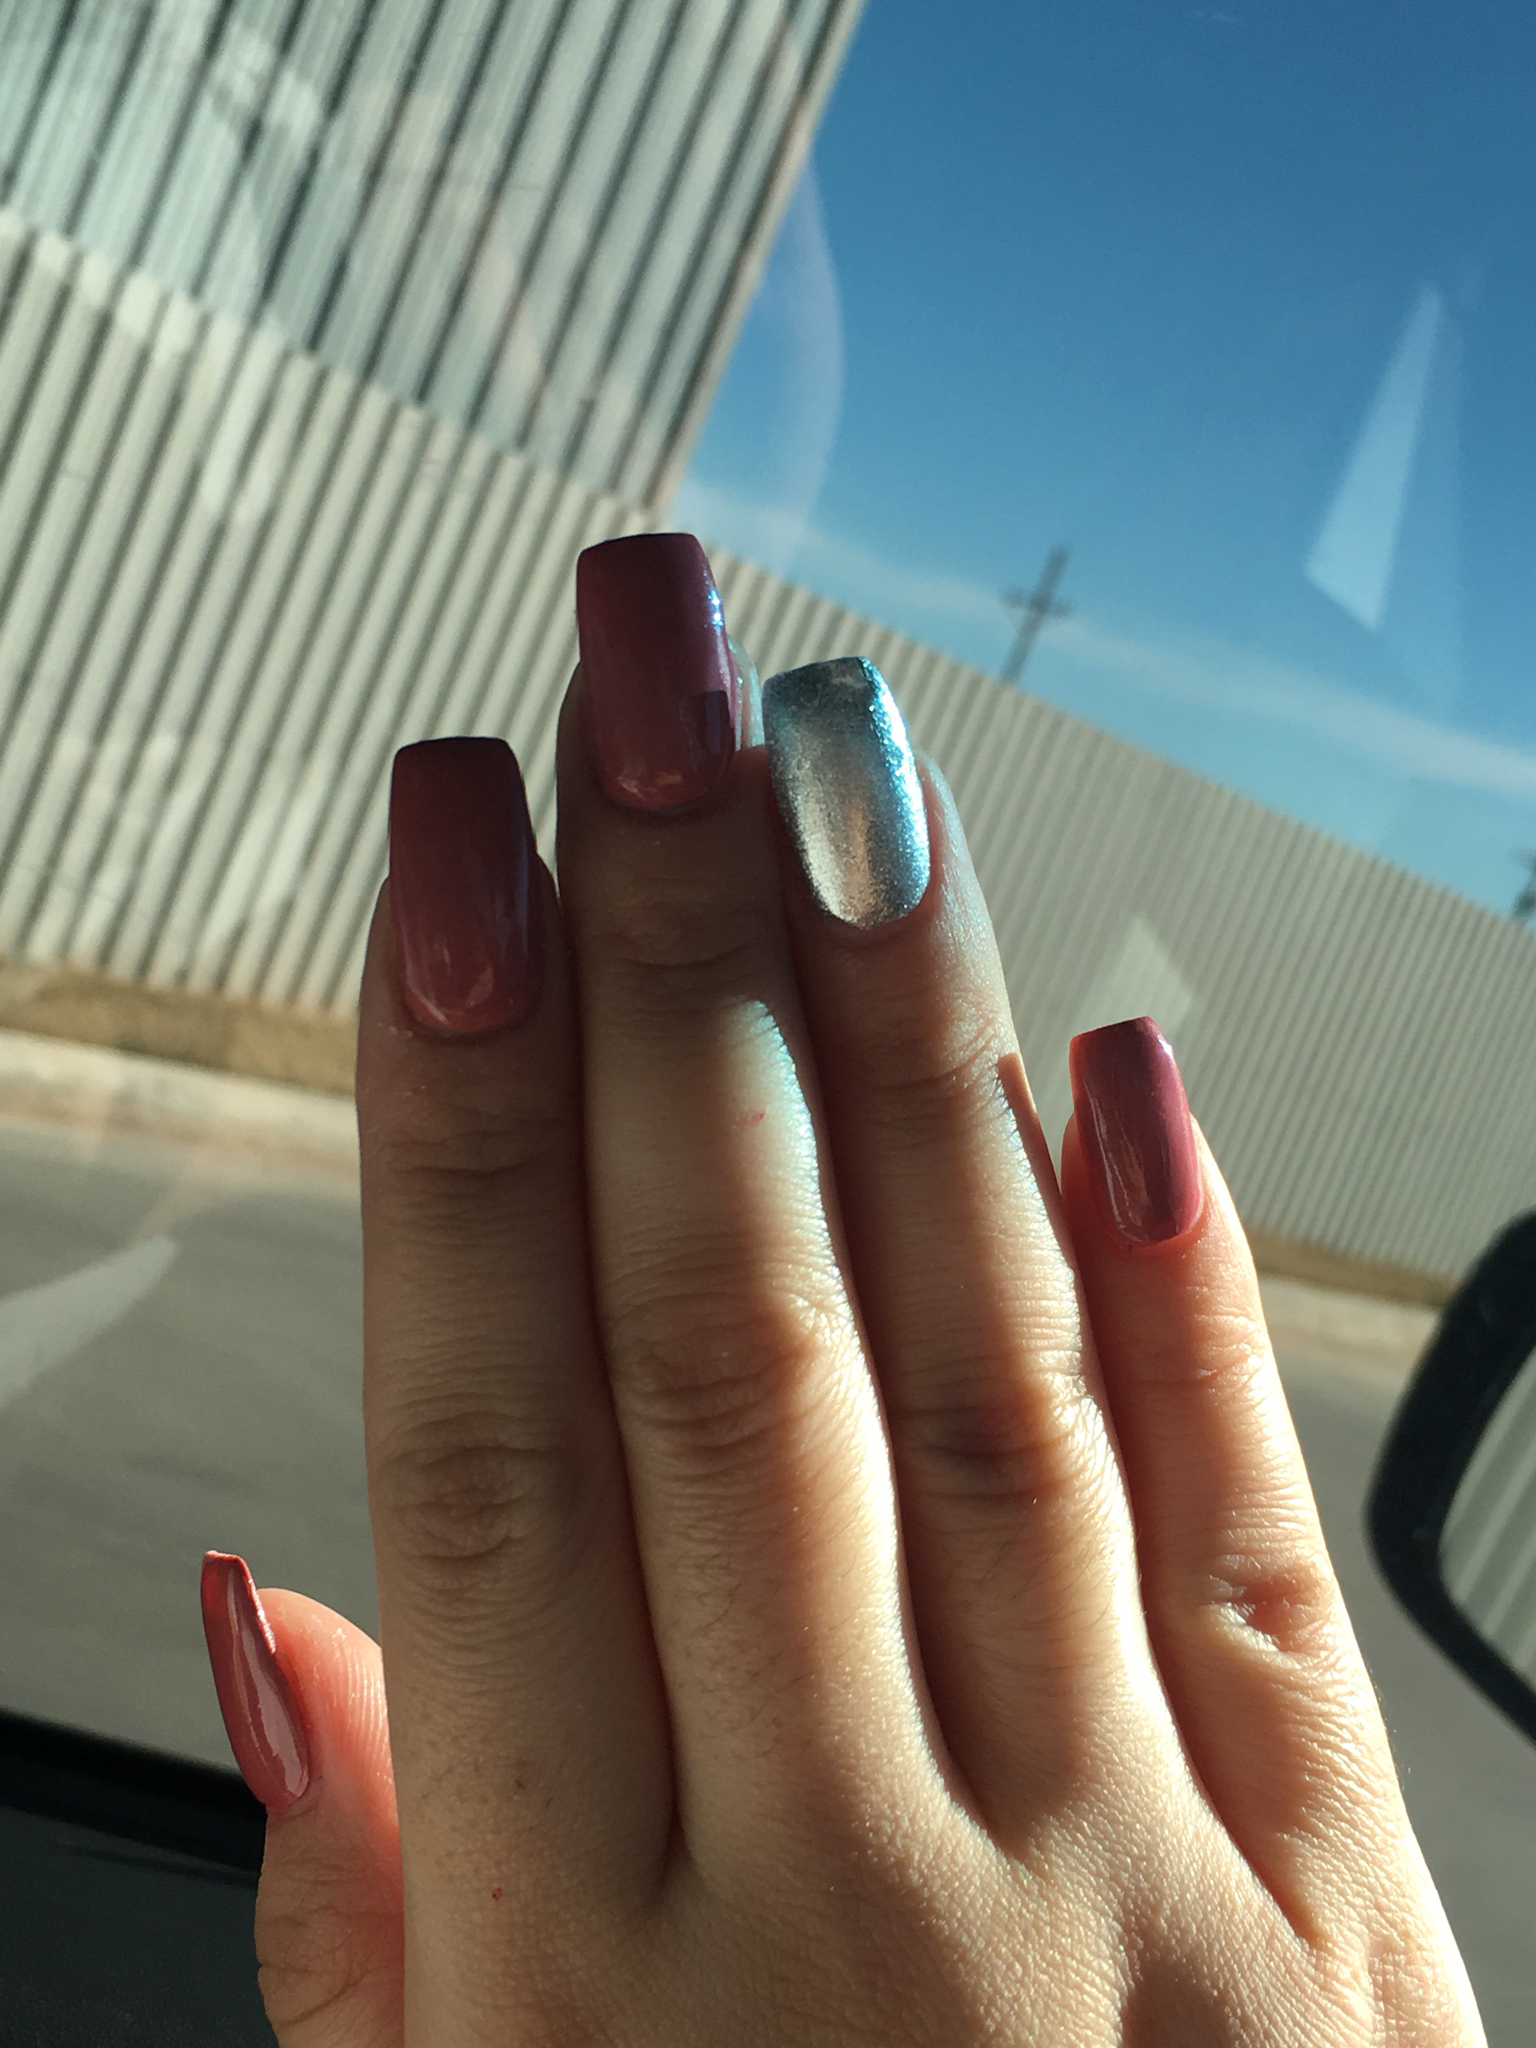 Star Nails 701 N 25 Mile Ave Ste 125, Hereford, TX 79045 - YP.com